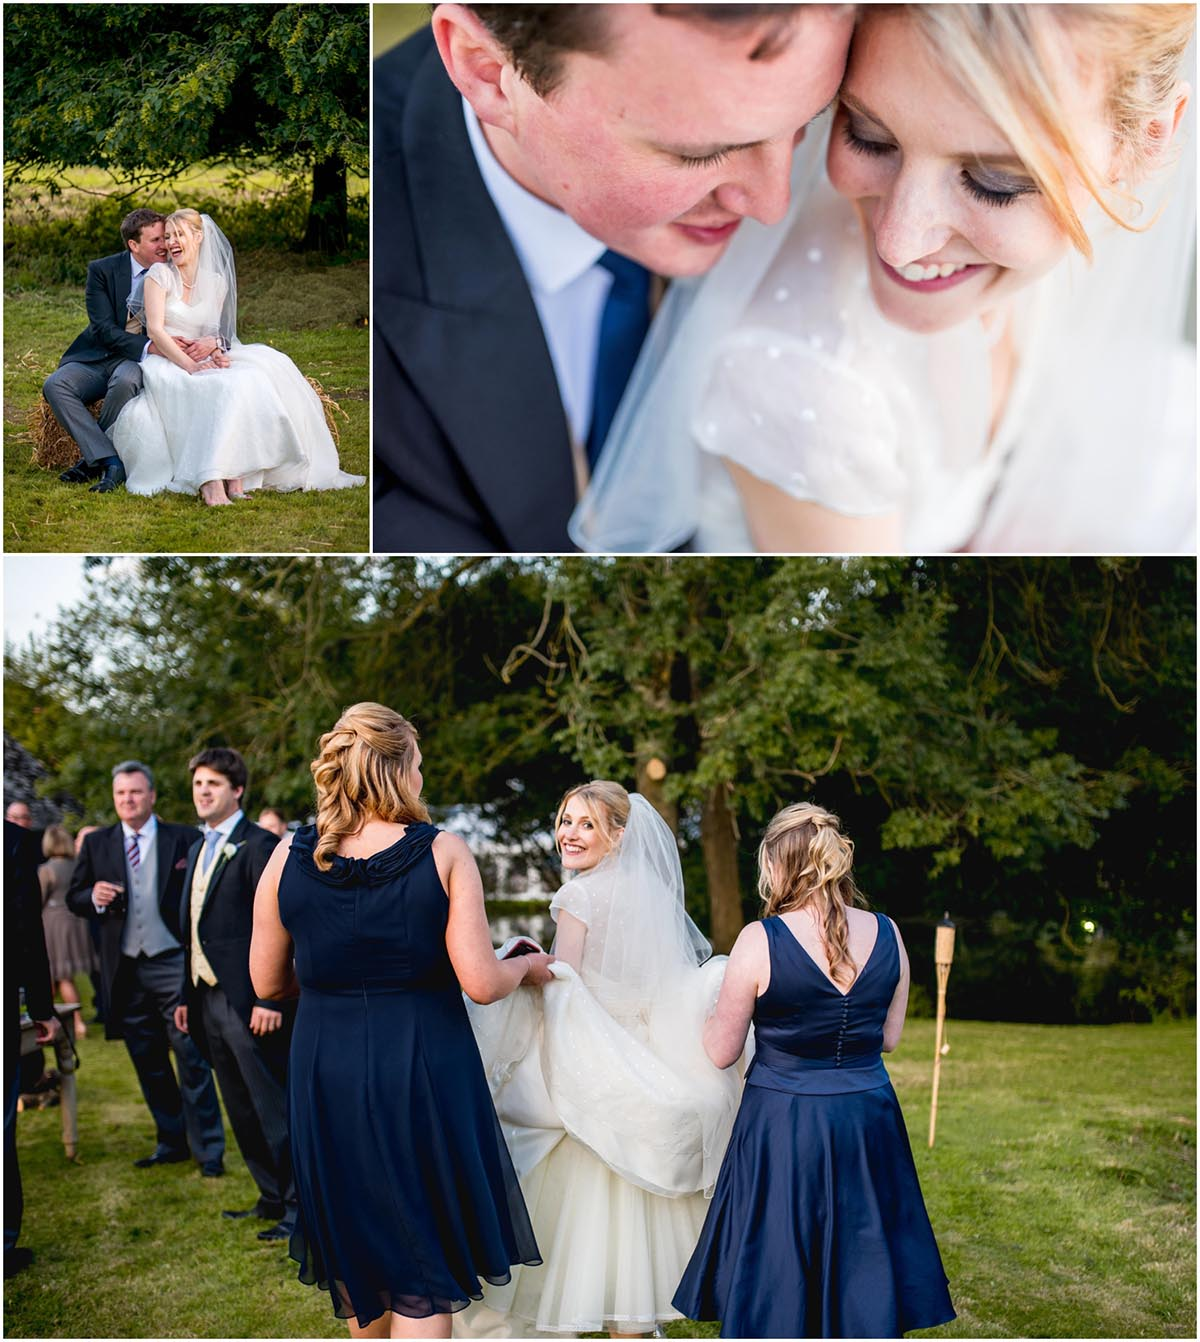 Susie and Ed's Dorset Wedding in Alton Pancras, Dorset, near Cerne Abbas, By Lisa Carpenter Photography, West Midlands, Birmingham based photographer, couple portraits